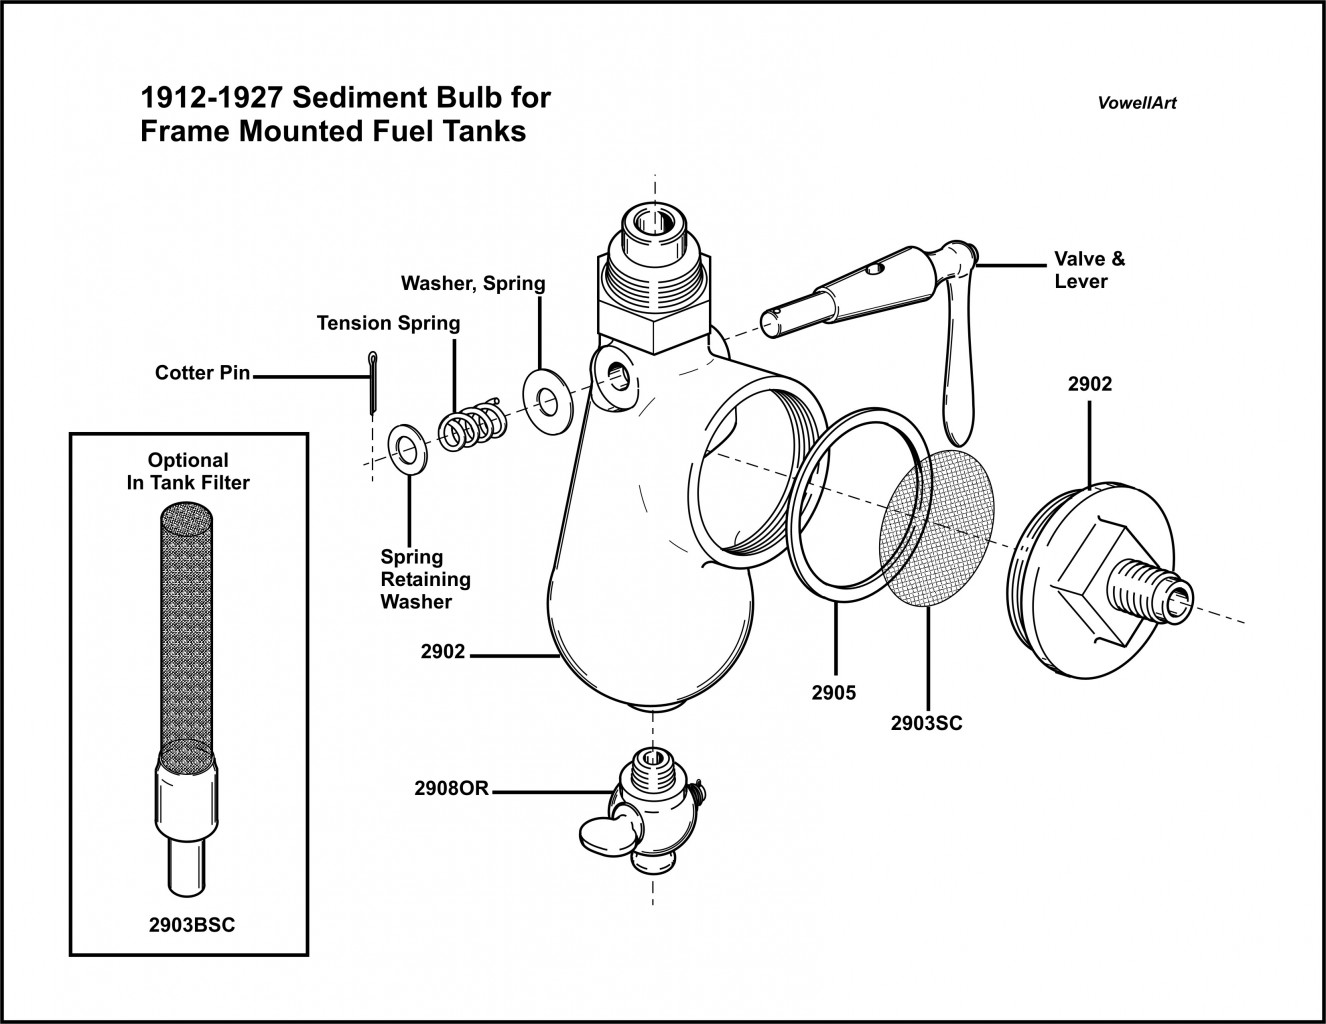 1912-1927 Sediment Bulb Assembly